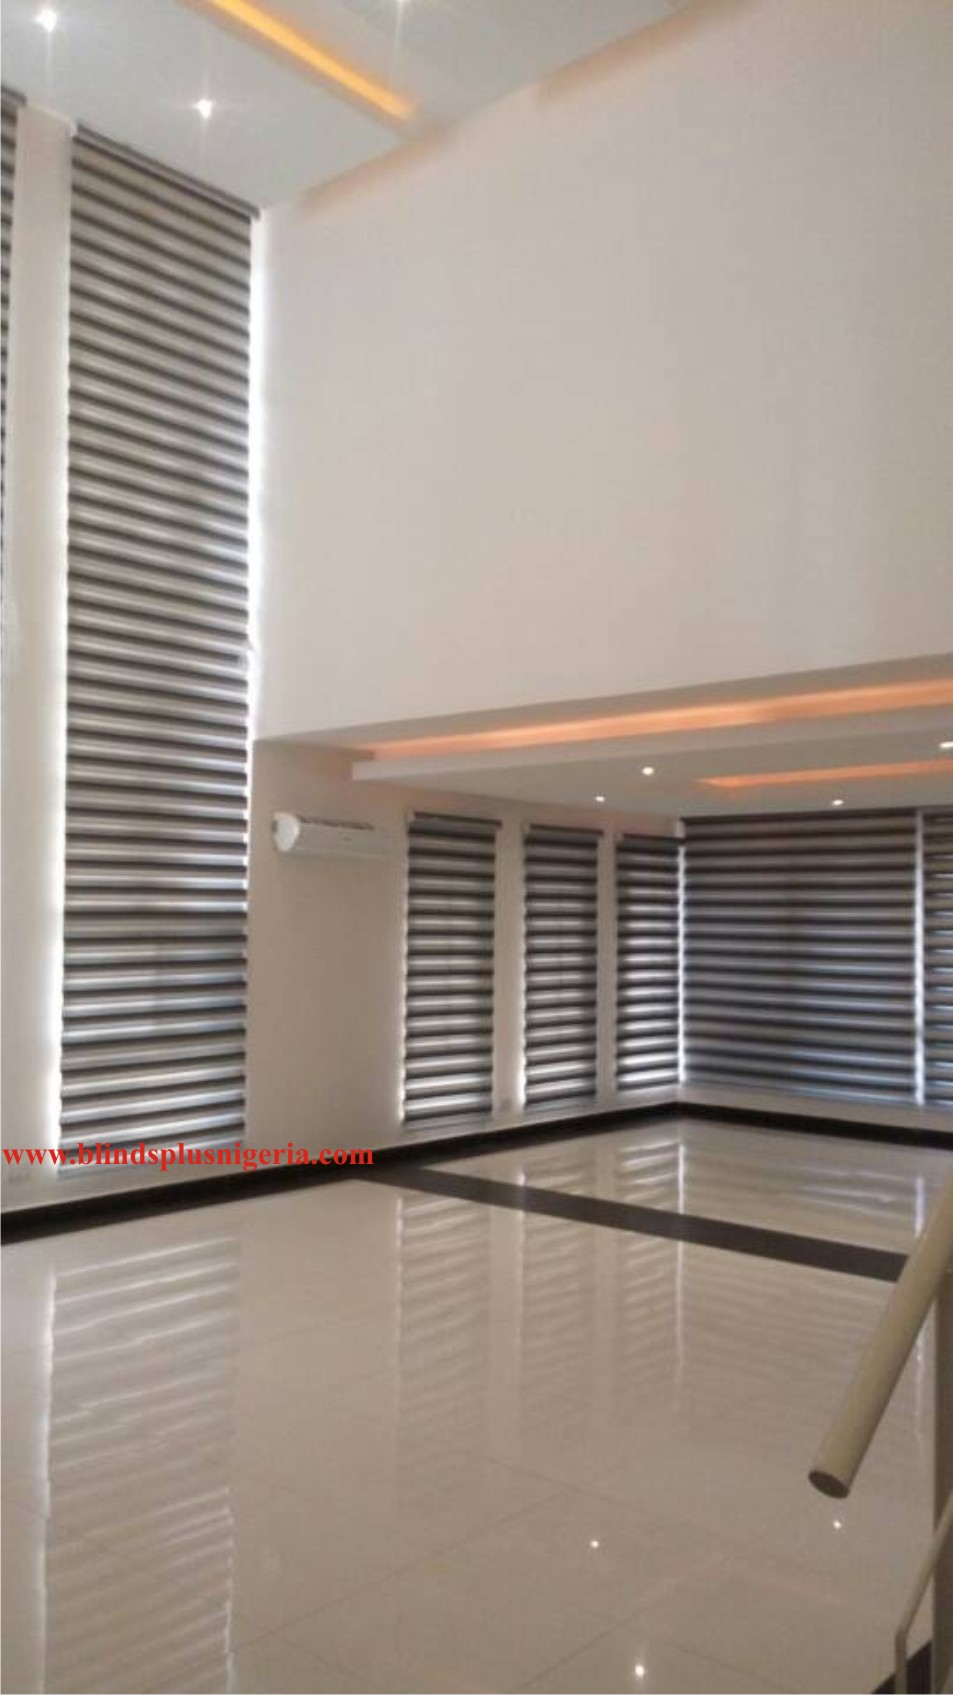 Quot Day Amp Night Quot Roller Shades Zebra Blinds Blinds Plus Ltd